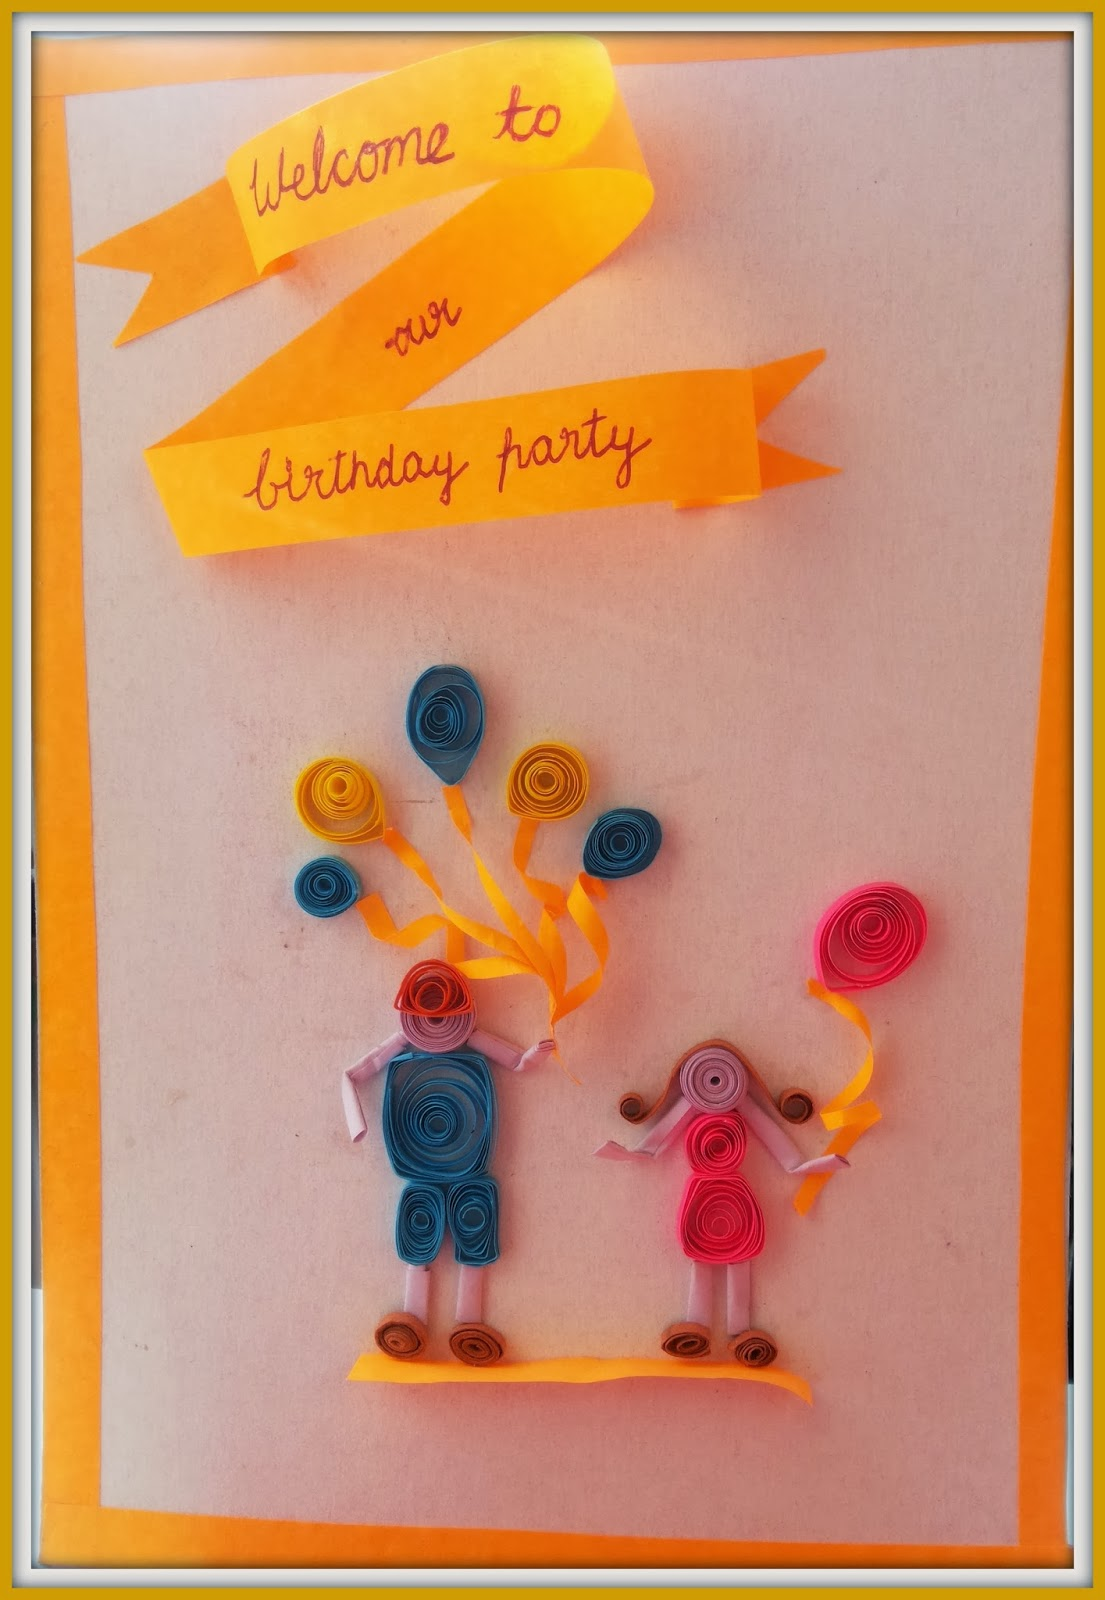 My quilling zone paper quilled birthday invite on behalf of my lil my sisters son5 and daughter1 are celebrating their bday and now that im quilling these days thought of doing a bday invite it isy holding stopboris Choice Image